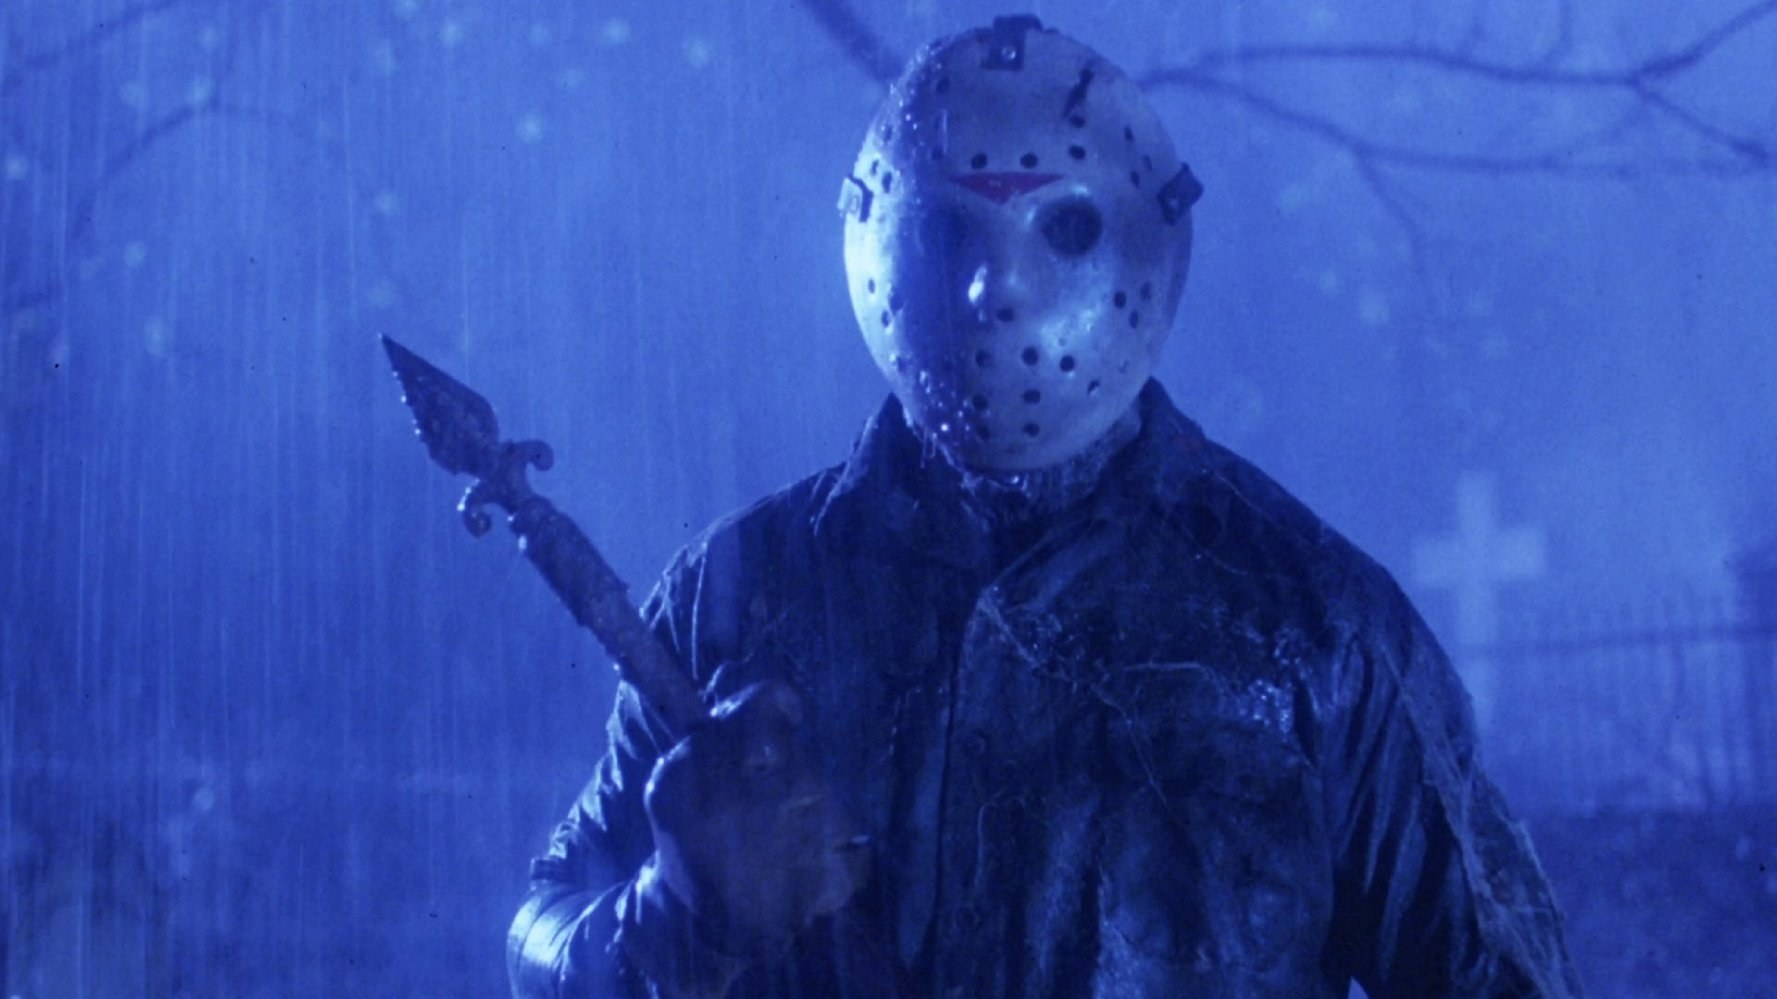 friday the 13th films ranked from worst to best